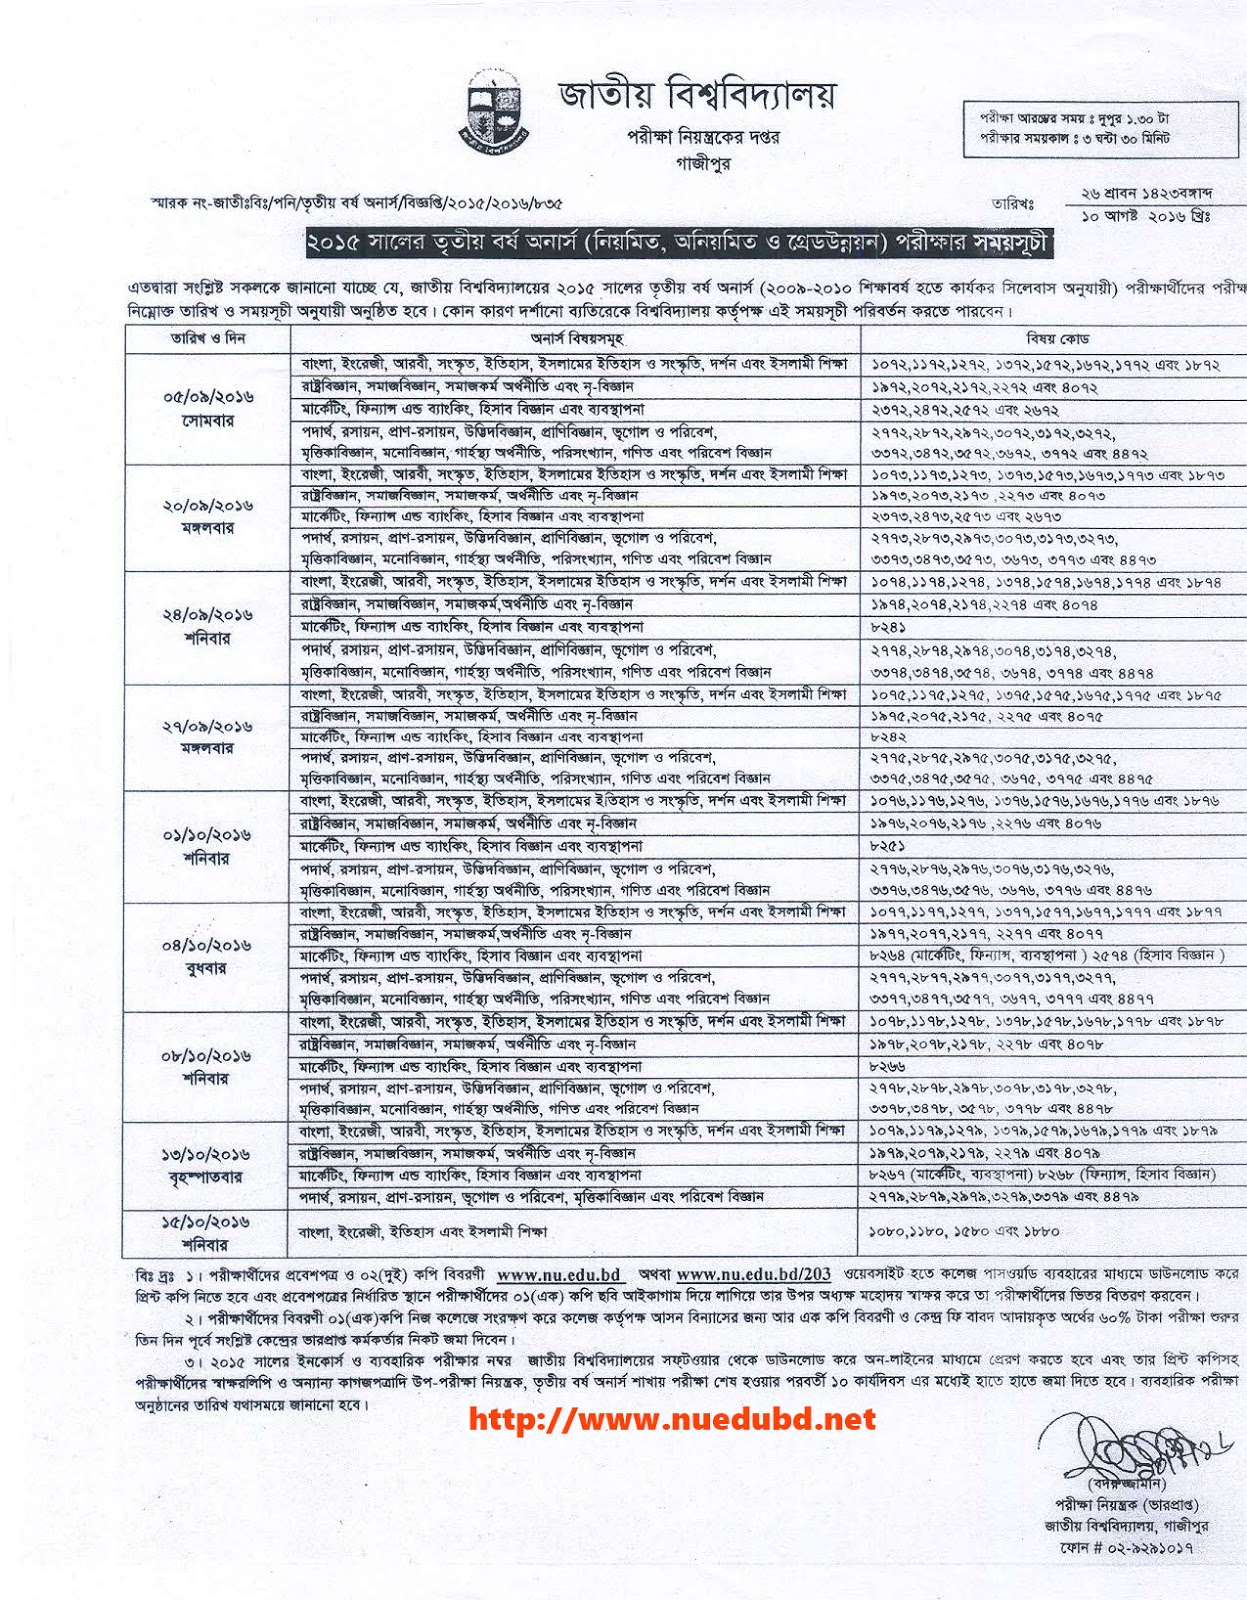 2015 NU Honours 3rd Year Routine and Center List